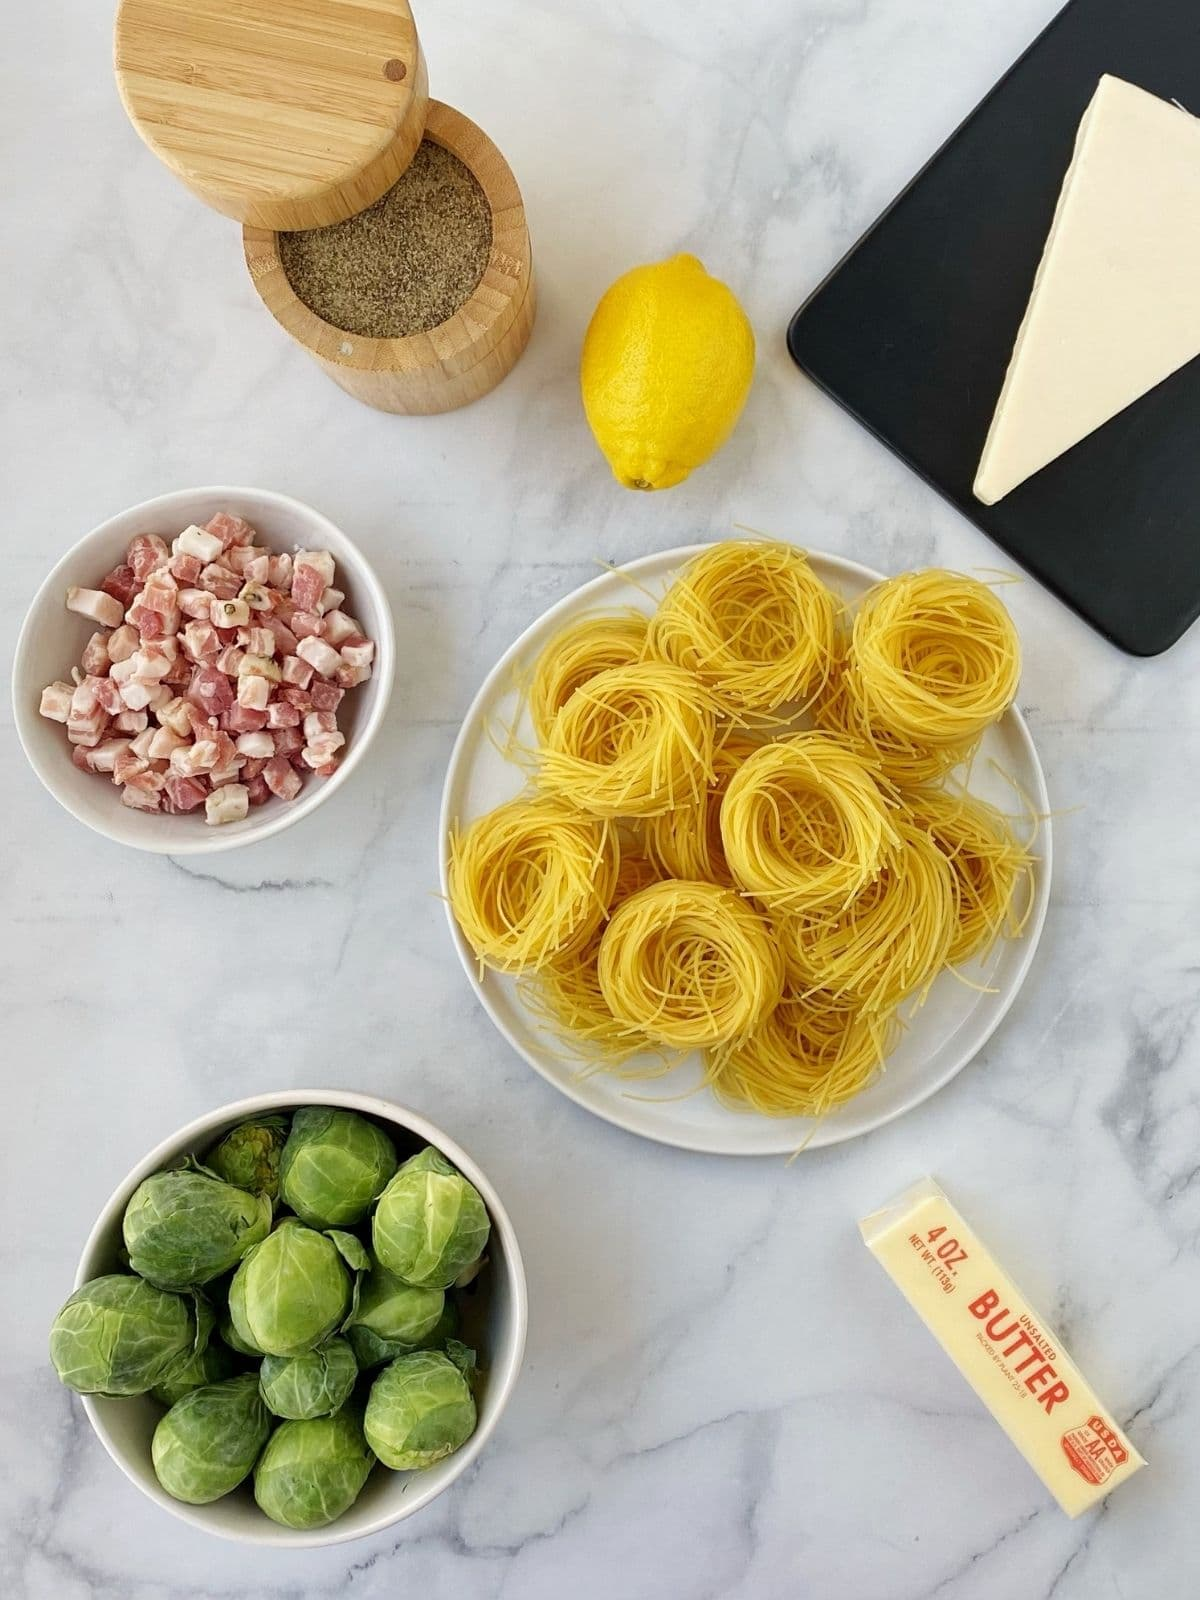 overhead shot of ingredients - sprouts, cheese, pasta, pancetta, lemon, butter